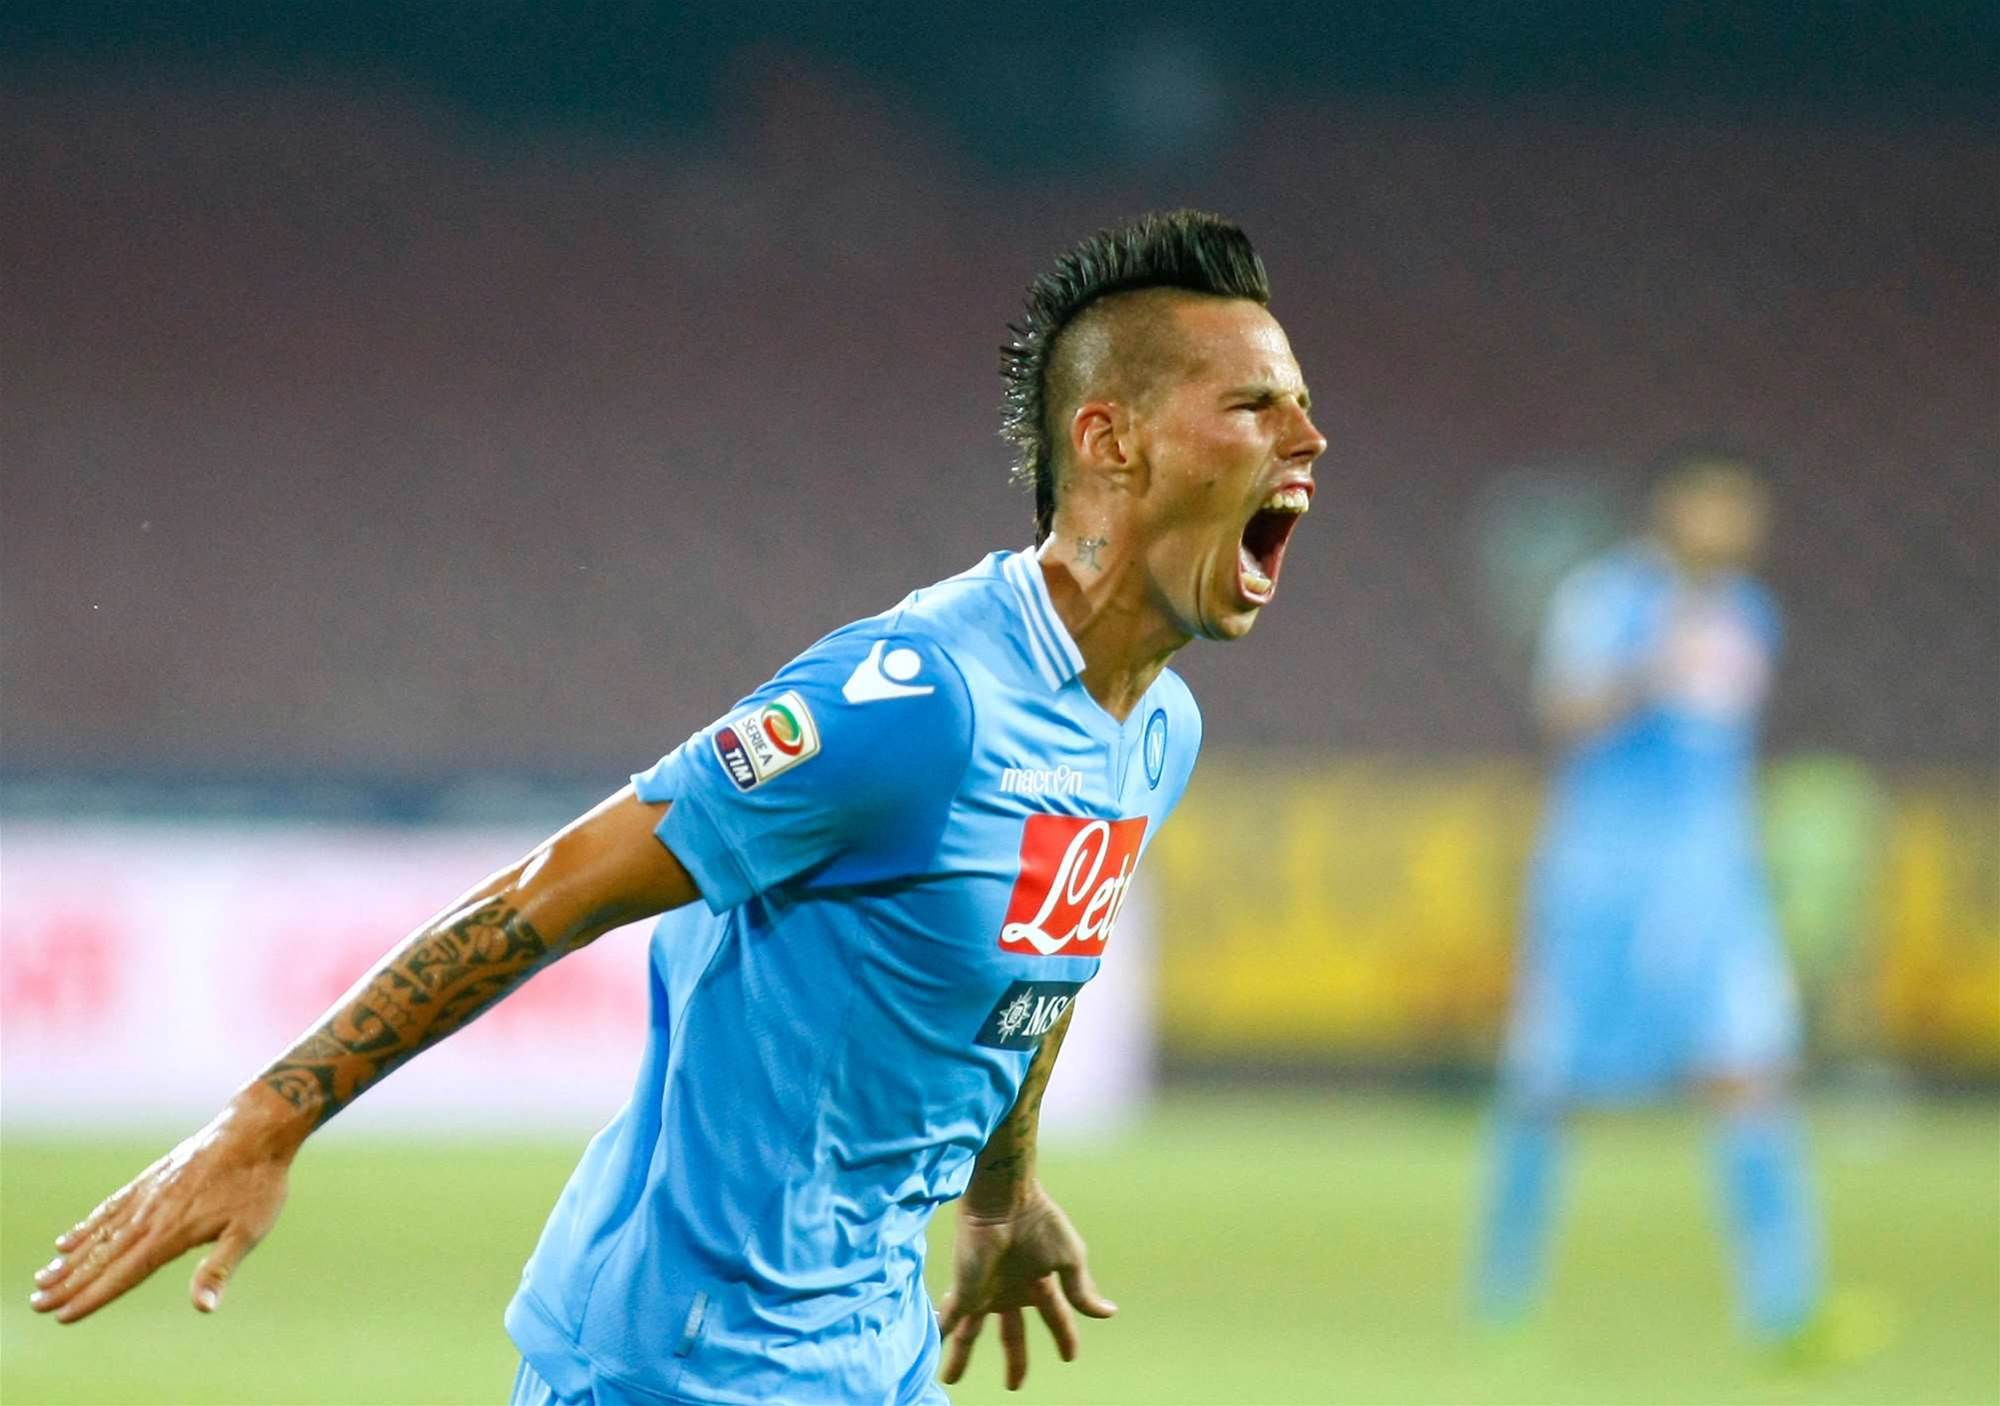 Serie A: Napoli top, Inter start with win